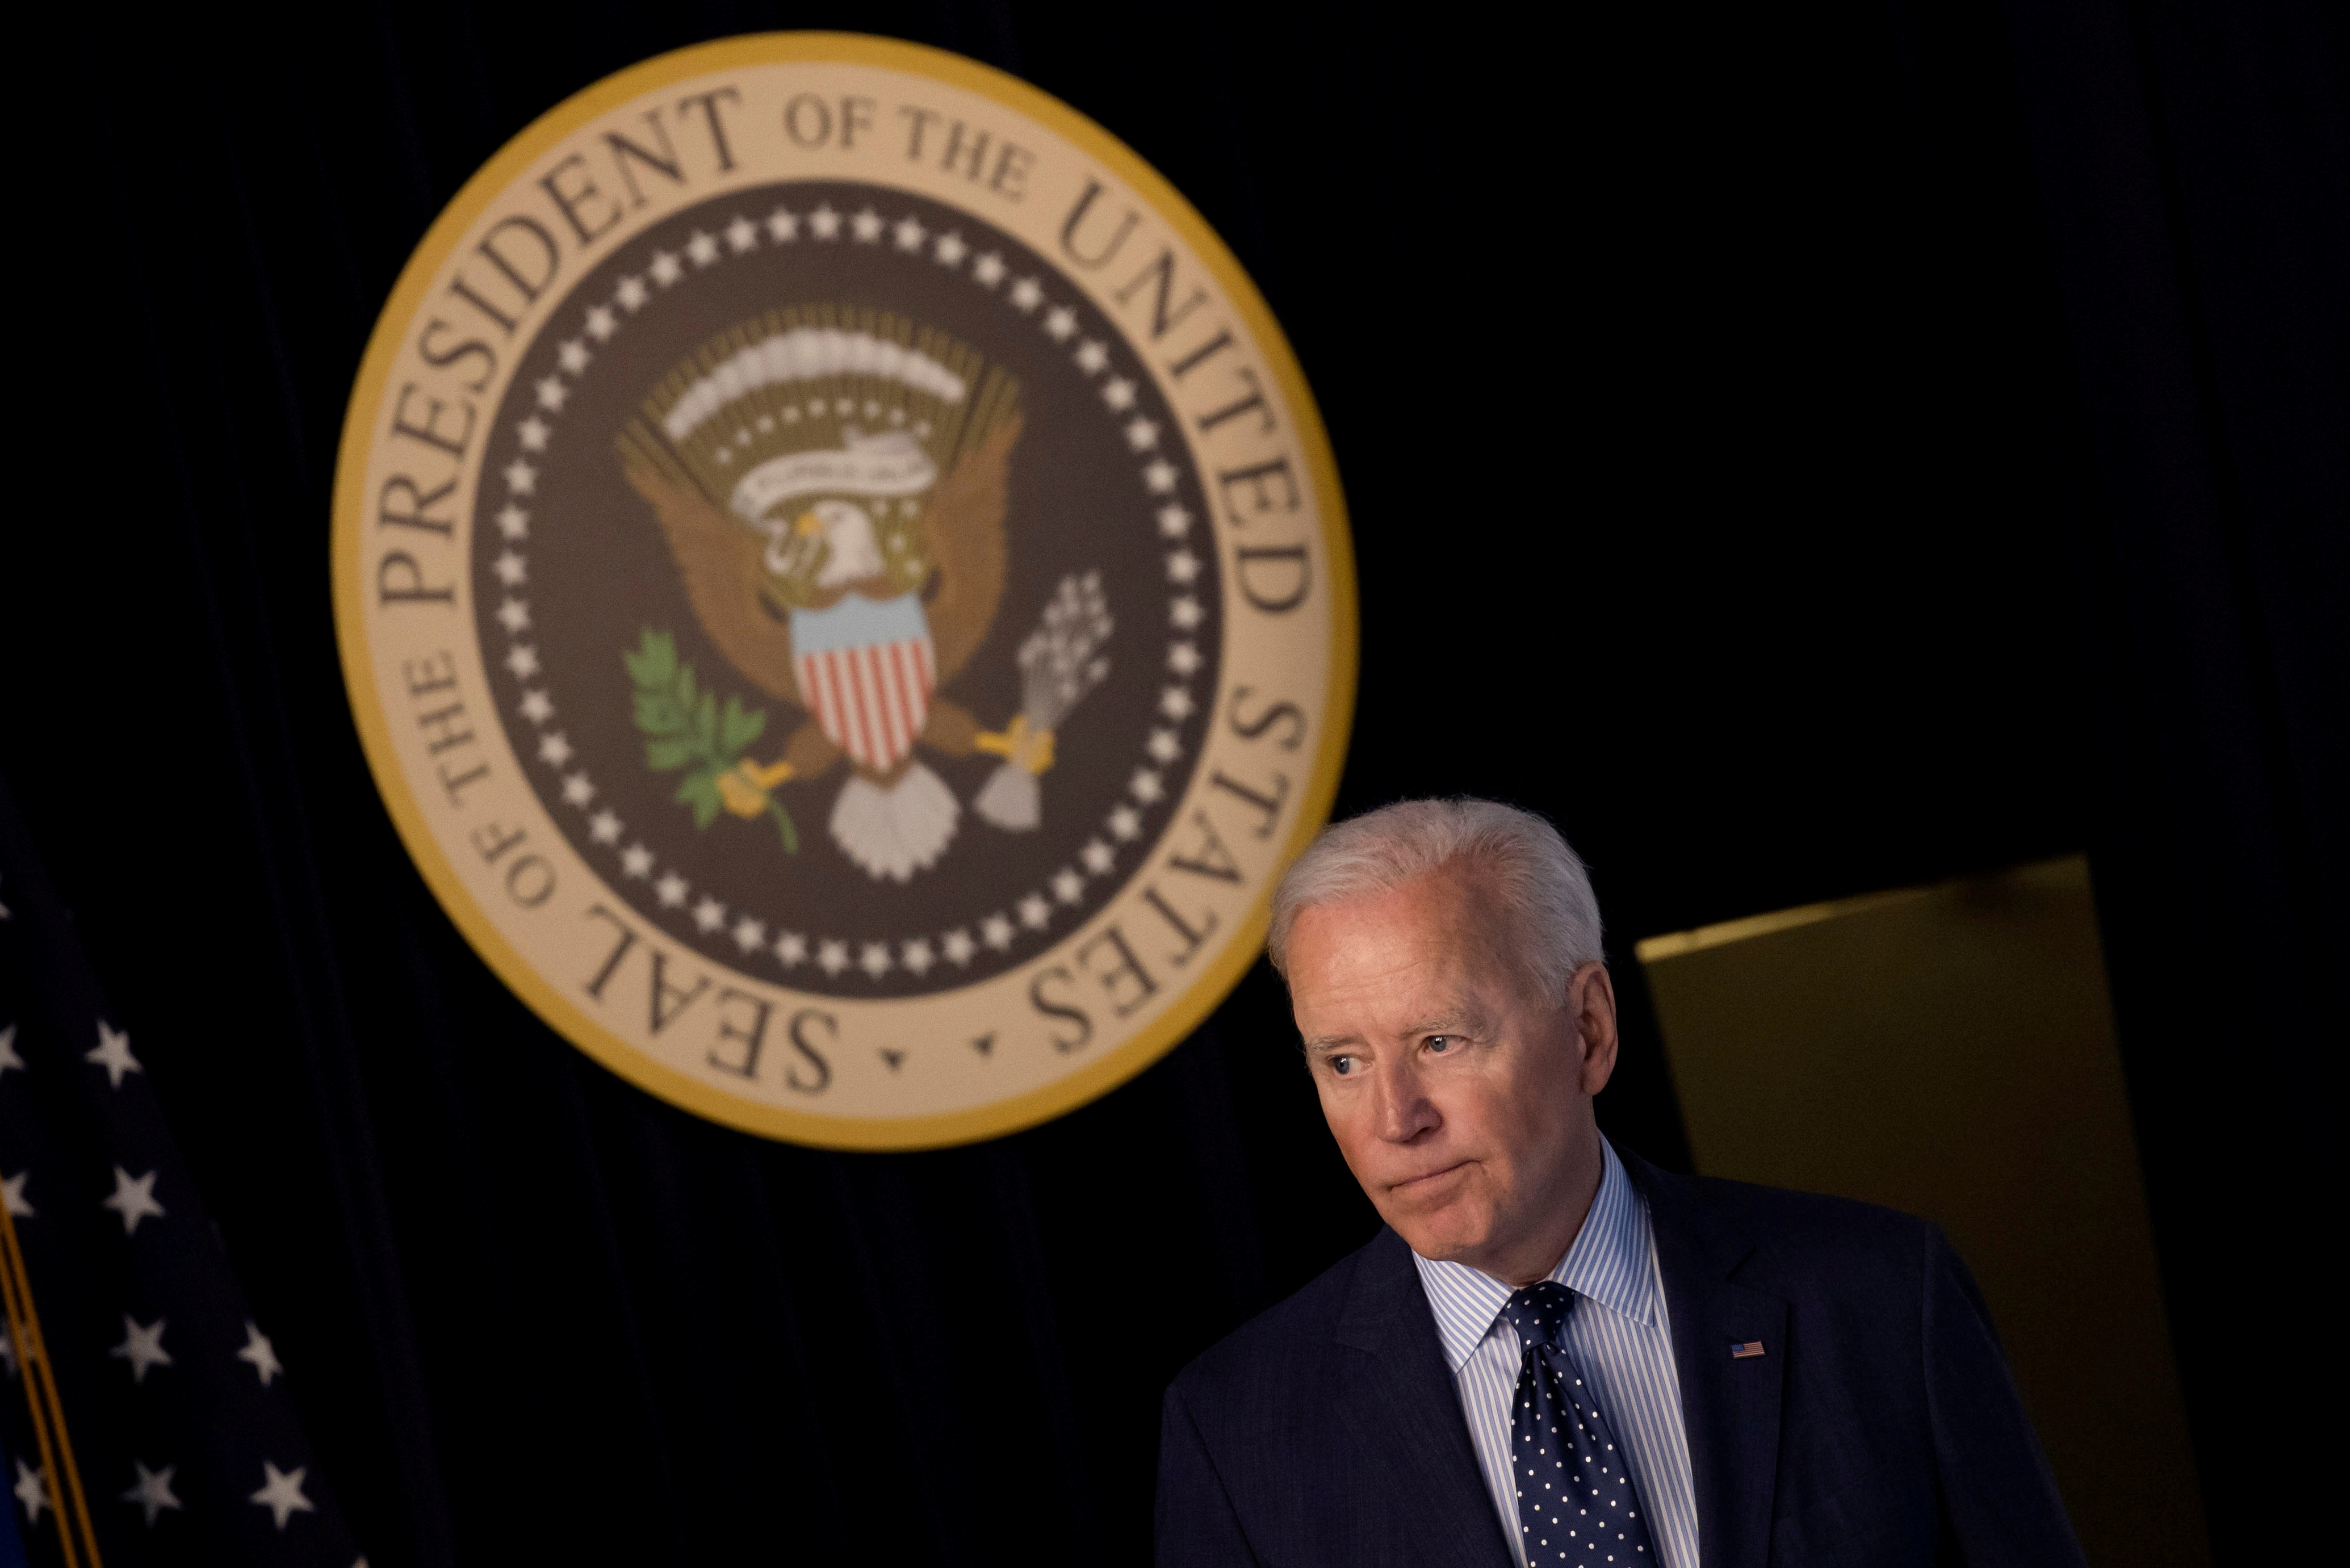 U.S. President  Joe Biden departs after delivering an update on his administration's coronavirus disease (COVID-19) response in the Eisenhower Executive Office Building's South Court Auditorium at the White House in Washington, U.S., June 2, 2021. REUTERS/Carlos Barria/File Photo